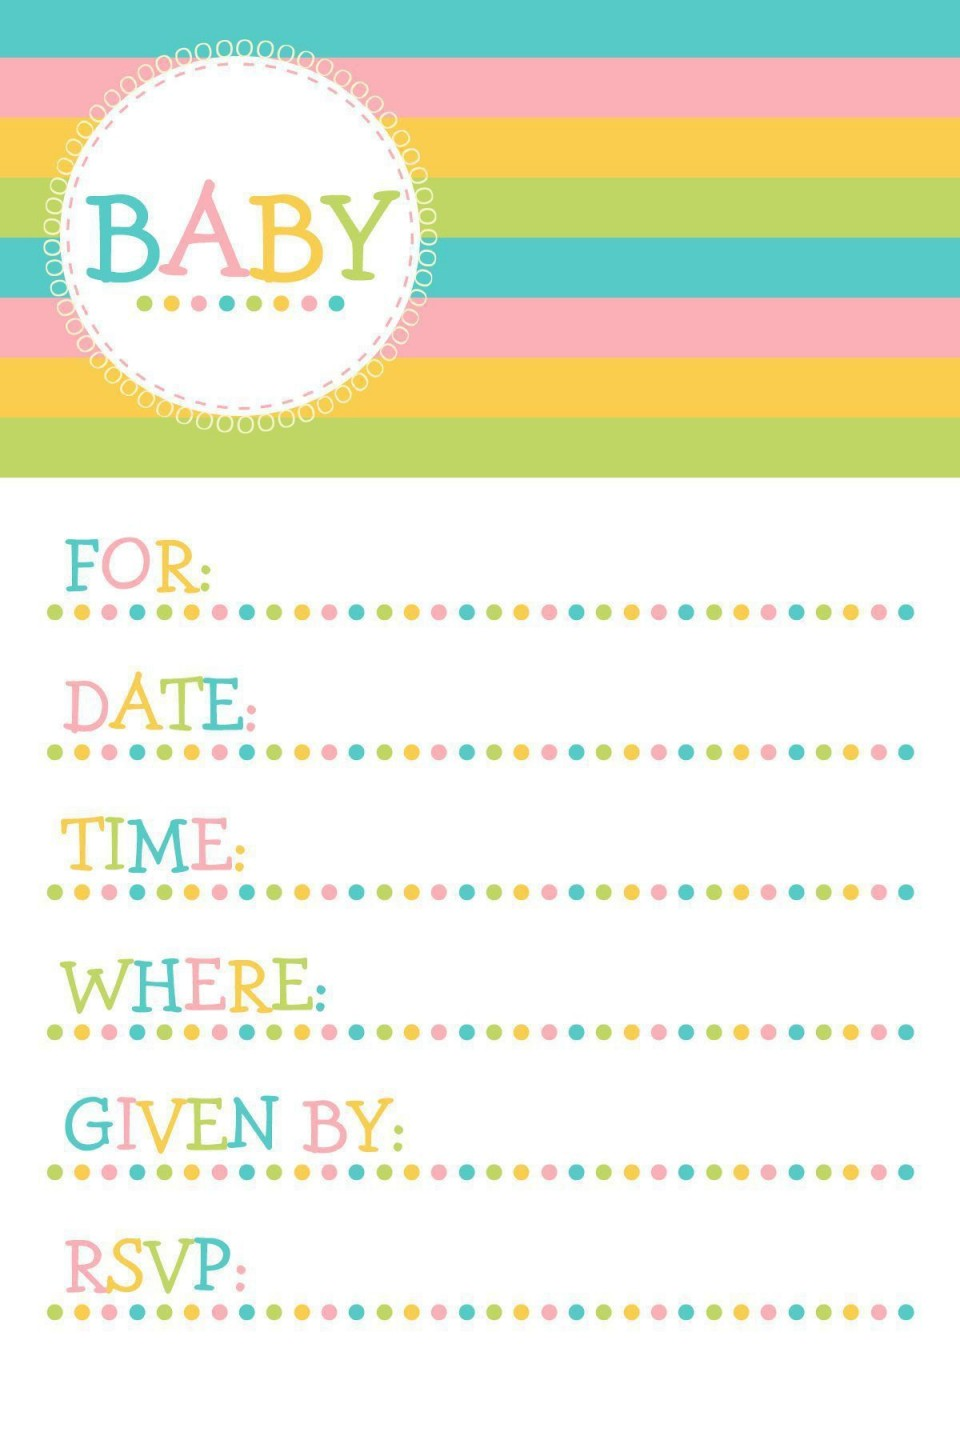 004 Magnificent Baby Shower Invitation Template Microsoft Word Photo  Free Editable960